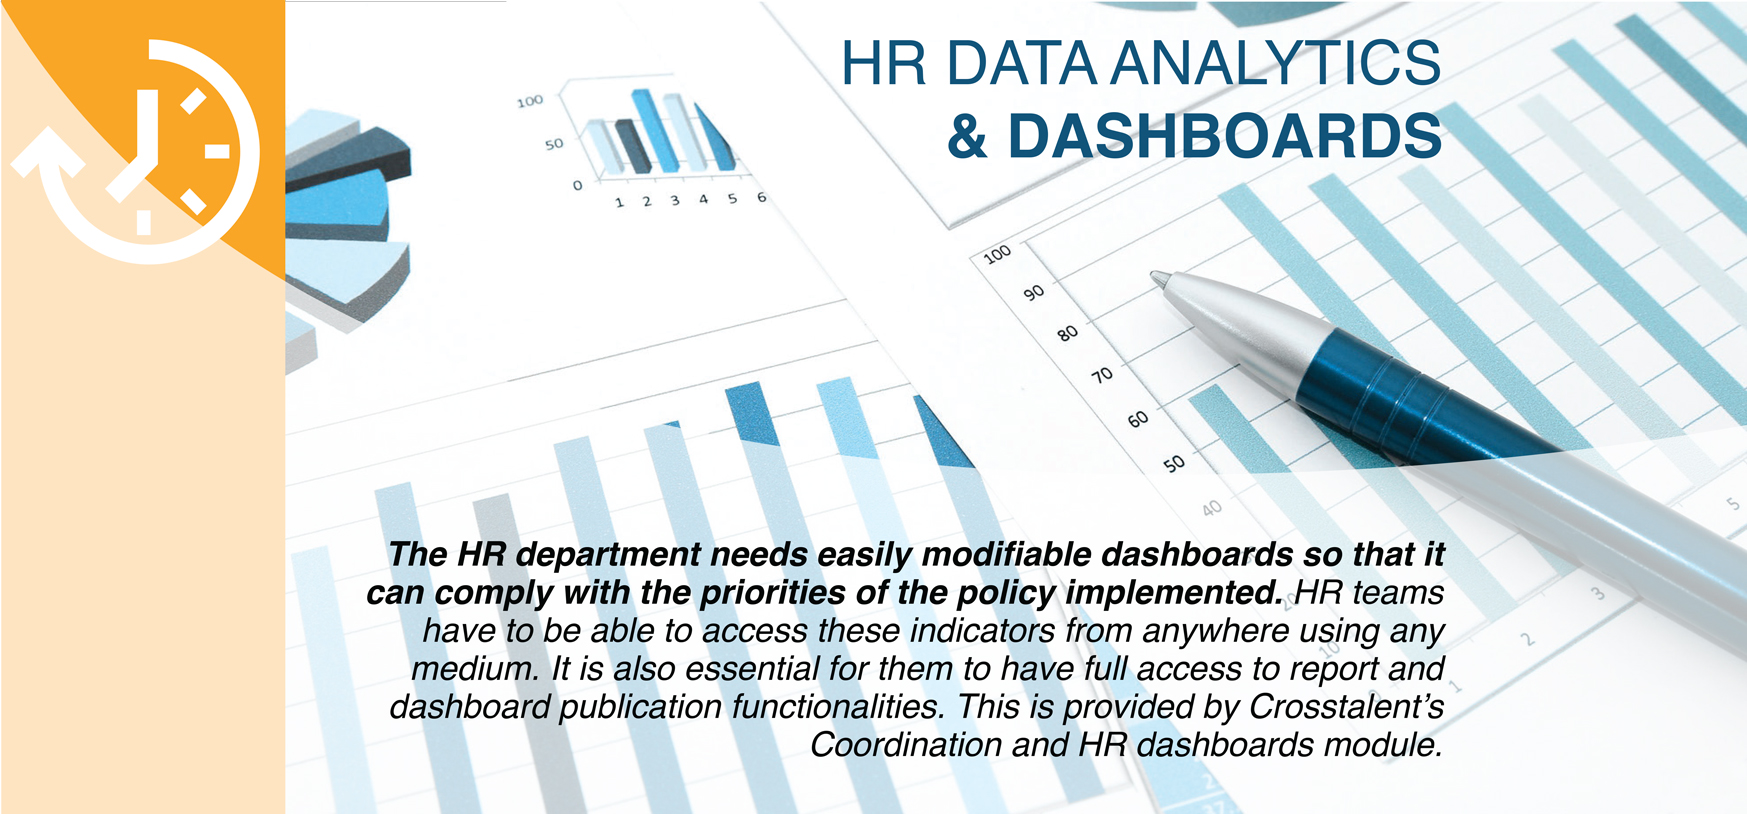 BANNER HR Data analytics & dashboards